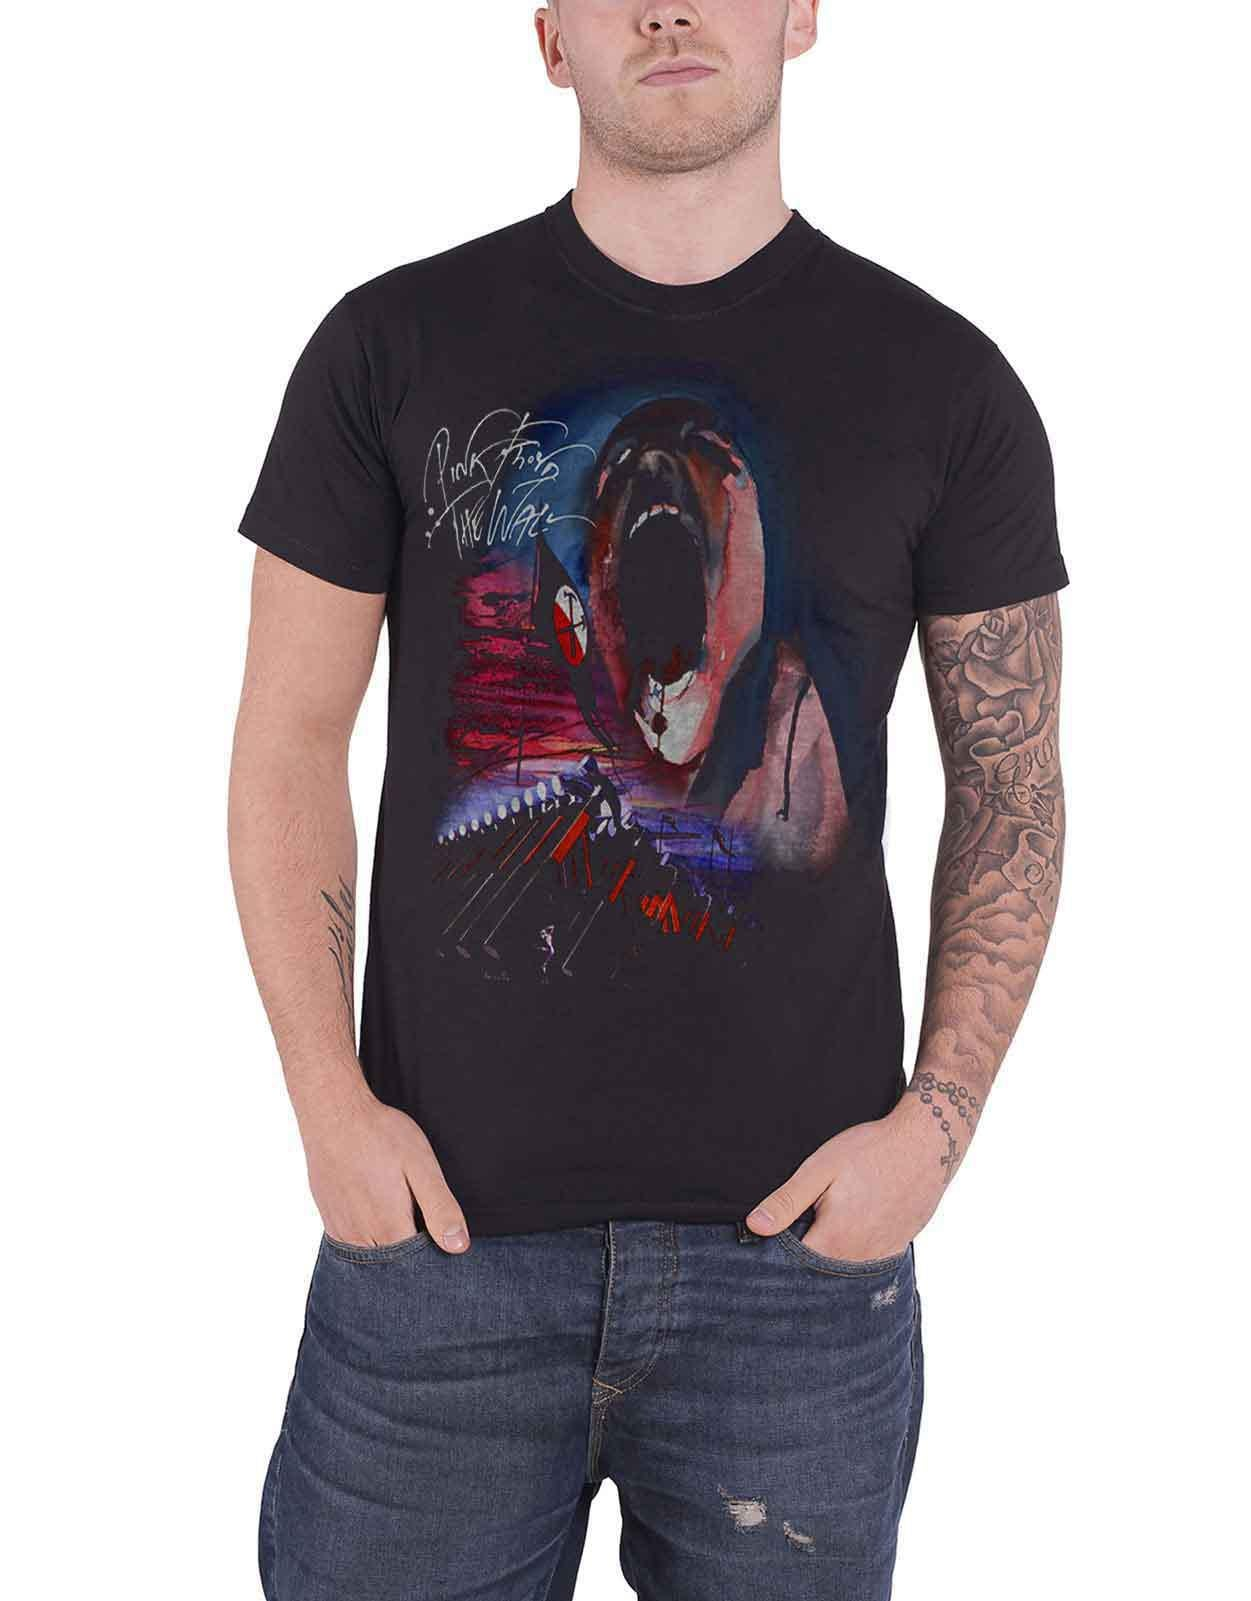 Pink Floyd T Shirt The Wall Scream and Hammers logo new Official Mens Black Size